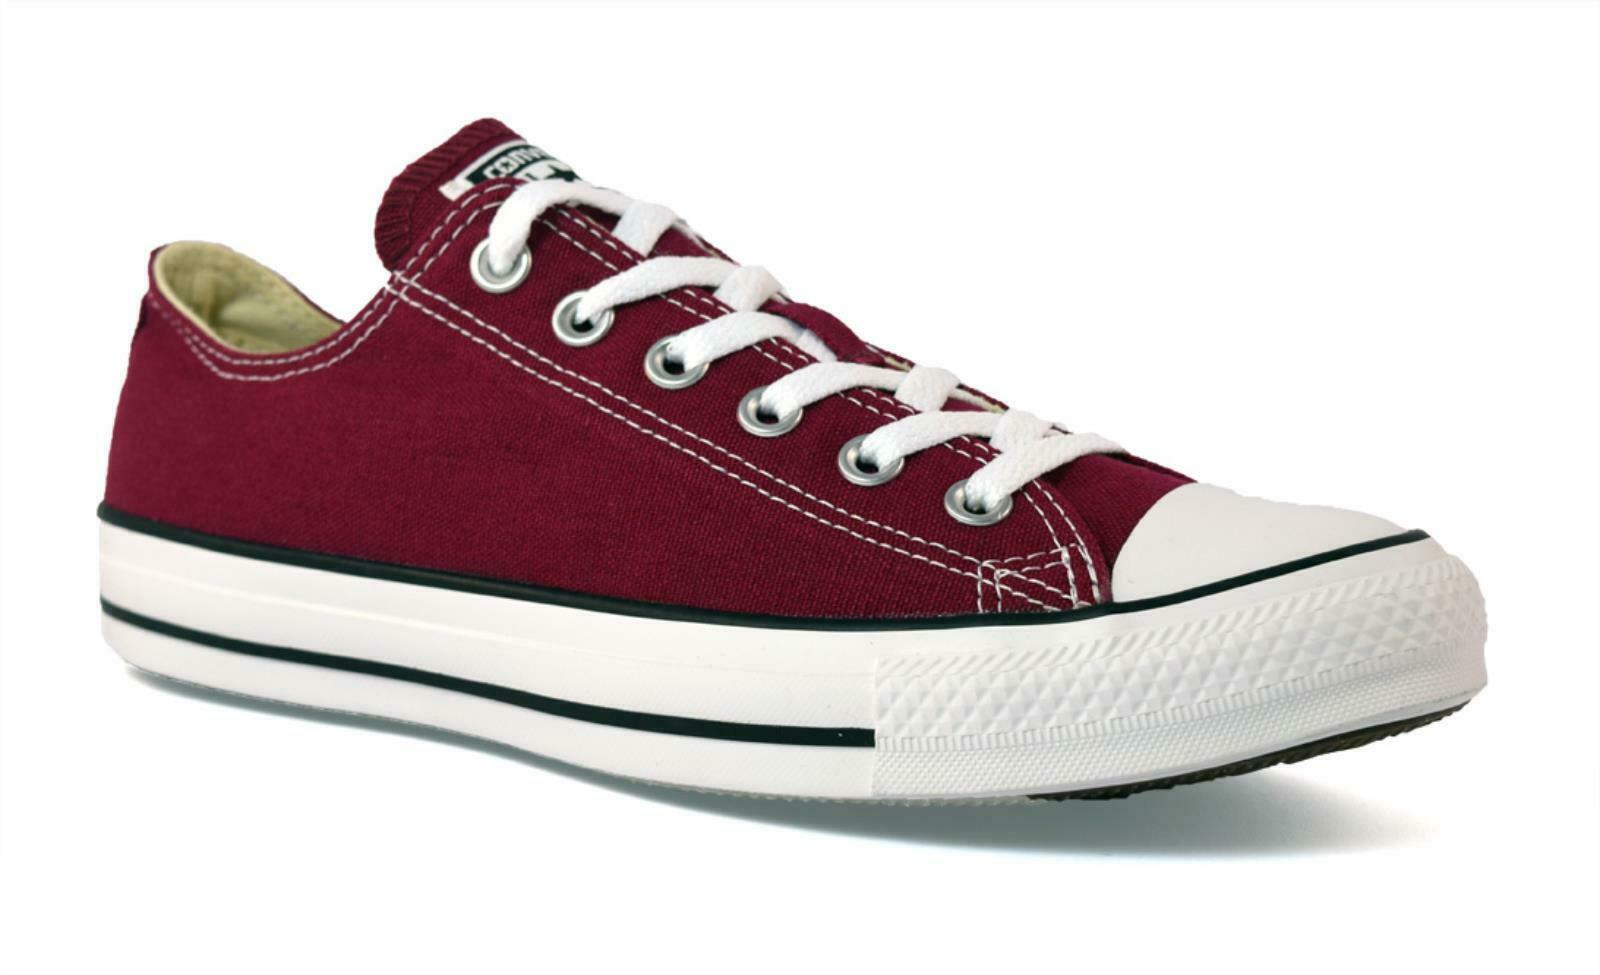 zapatillas CONVERSE ALL STAR M9691 UNISEX TELA BORDEAUX